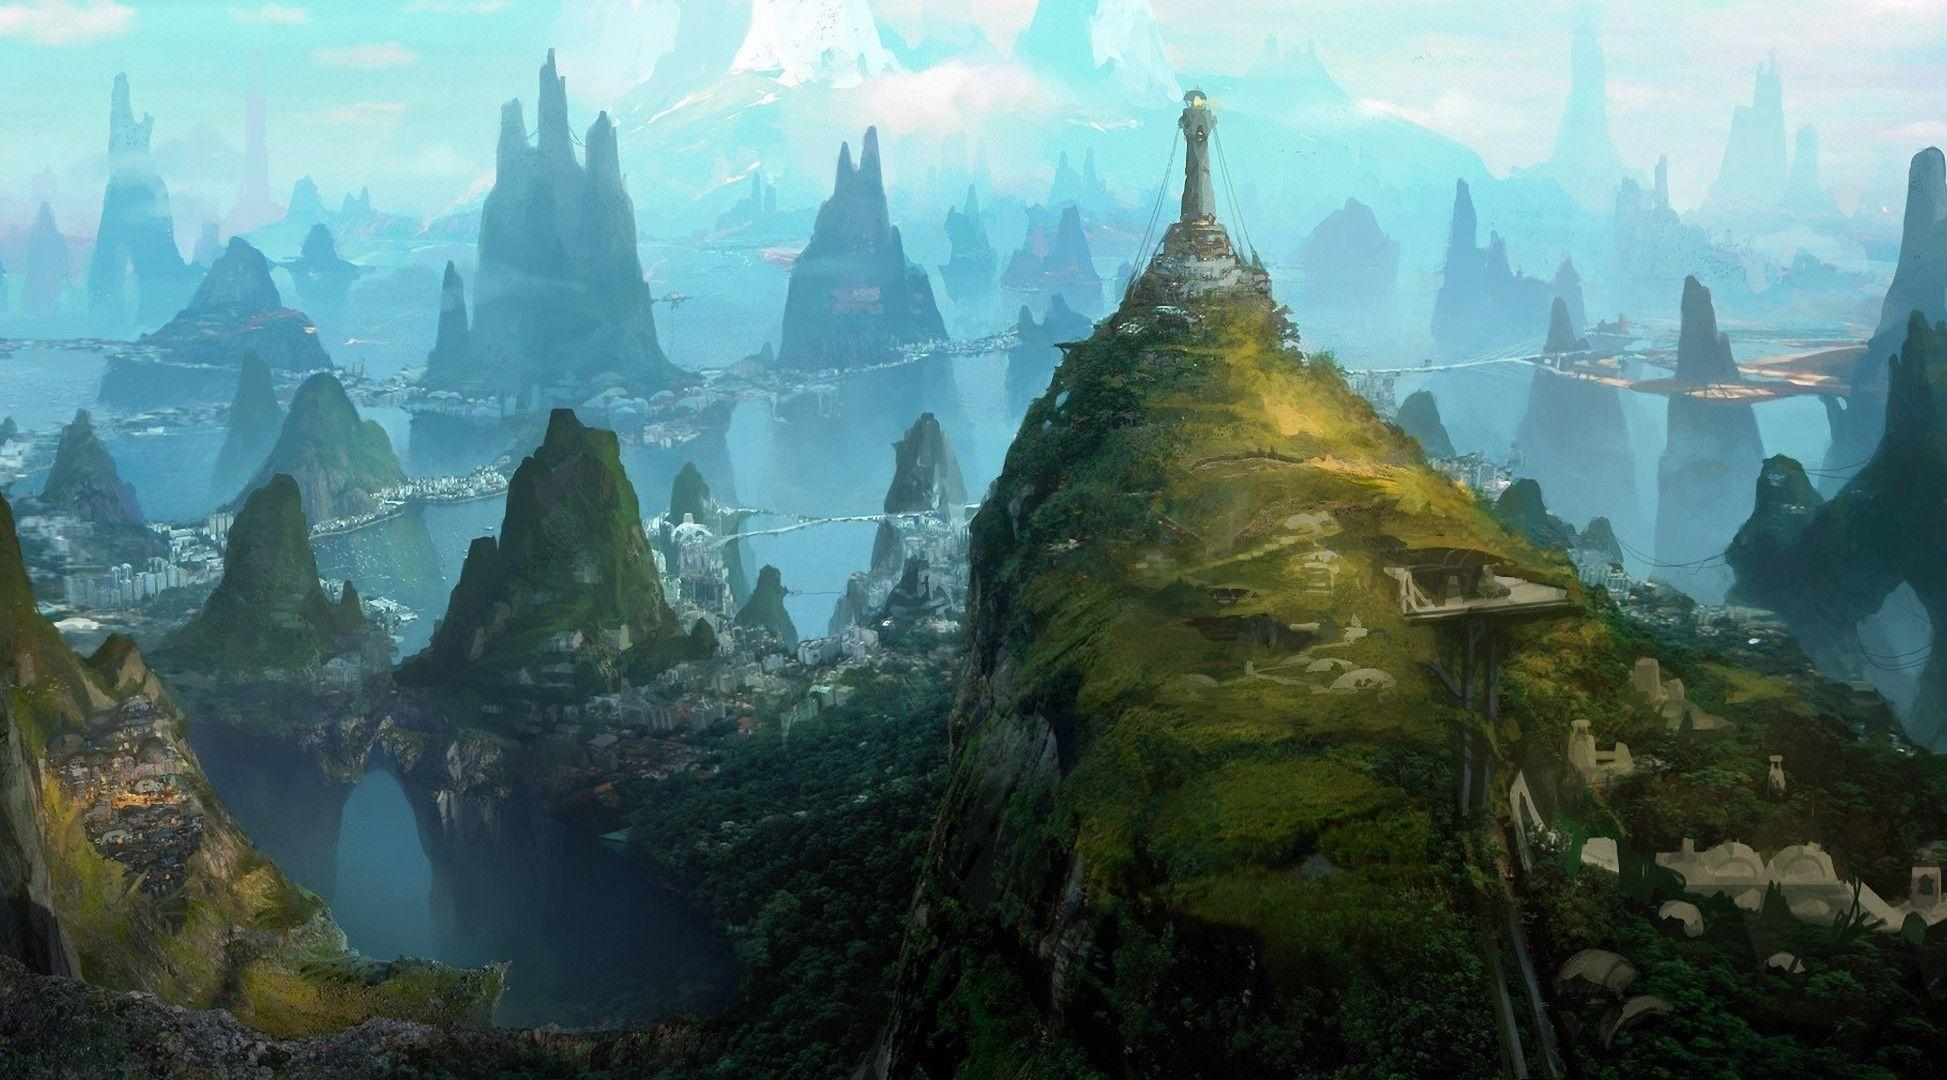 Fantasy Landscape City Photos 14861 Full HD Wallpapers Desktop